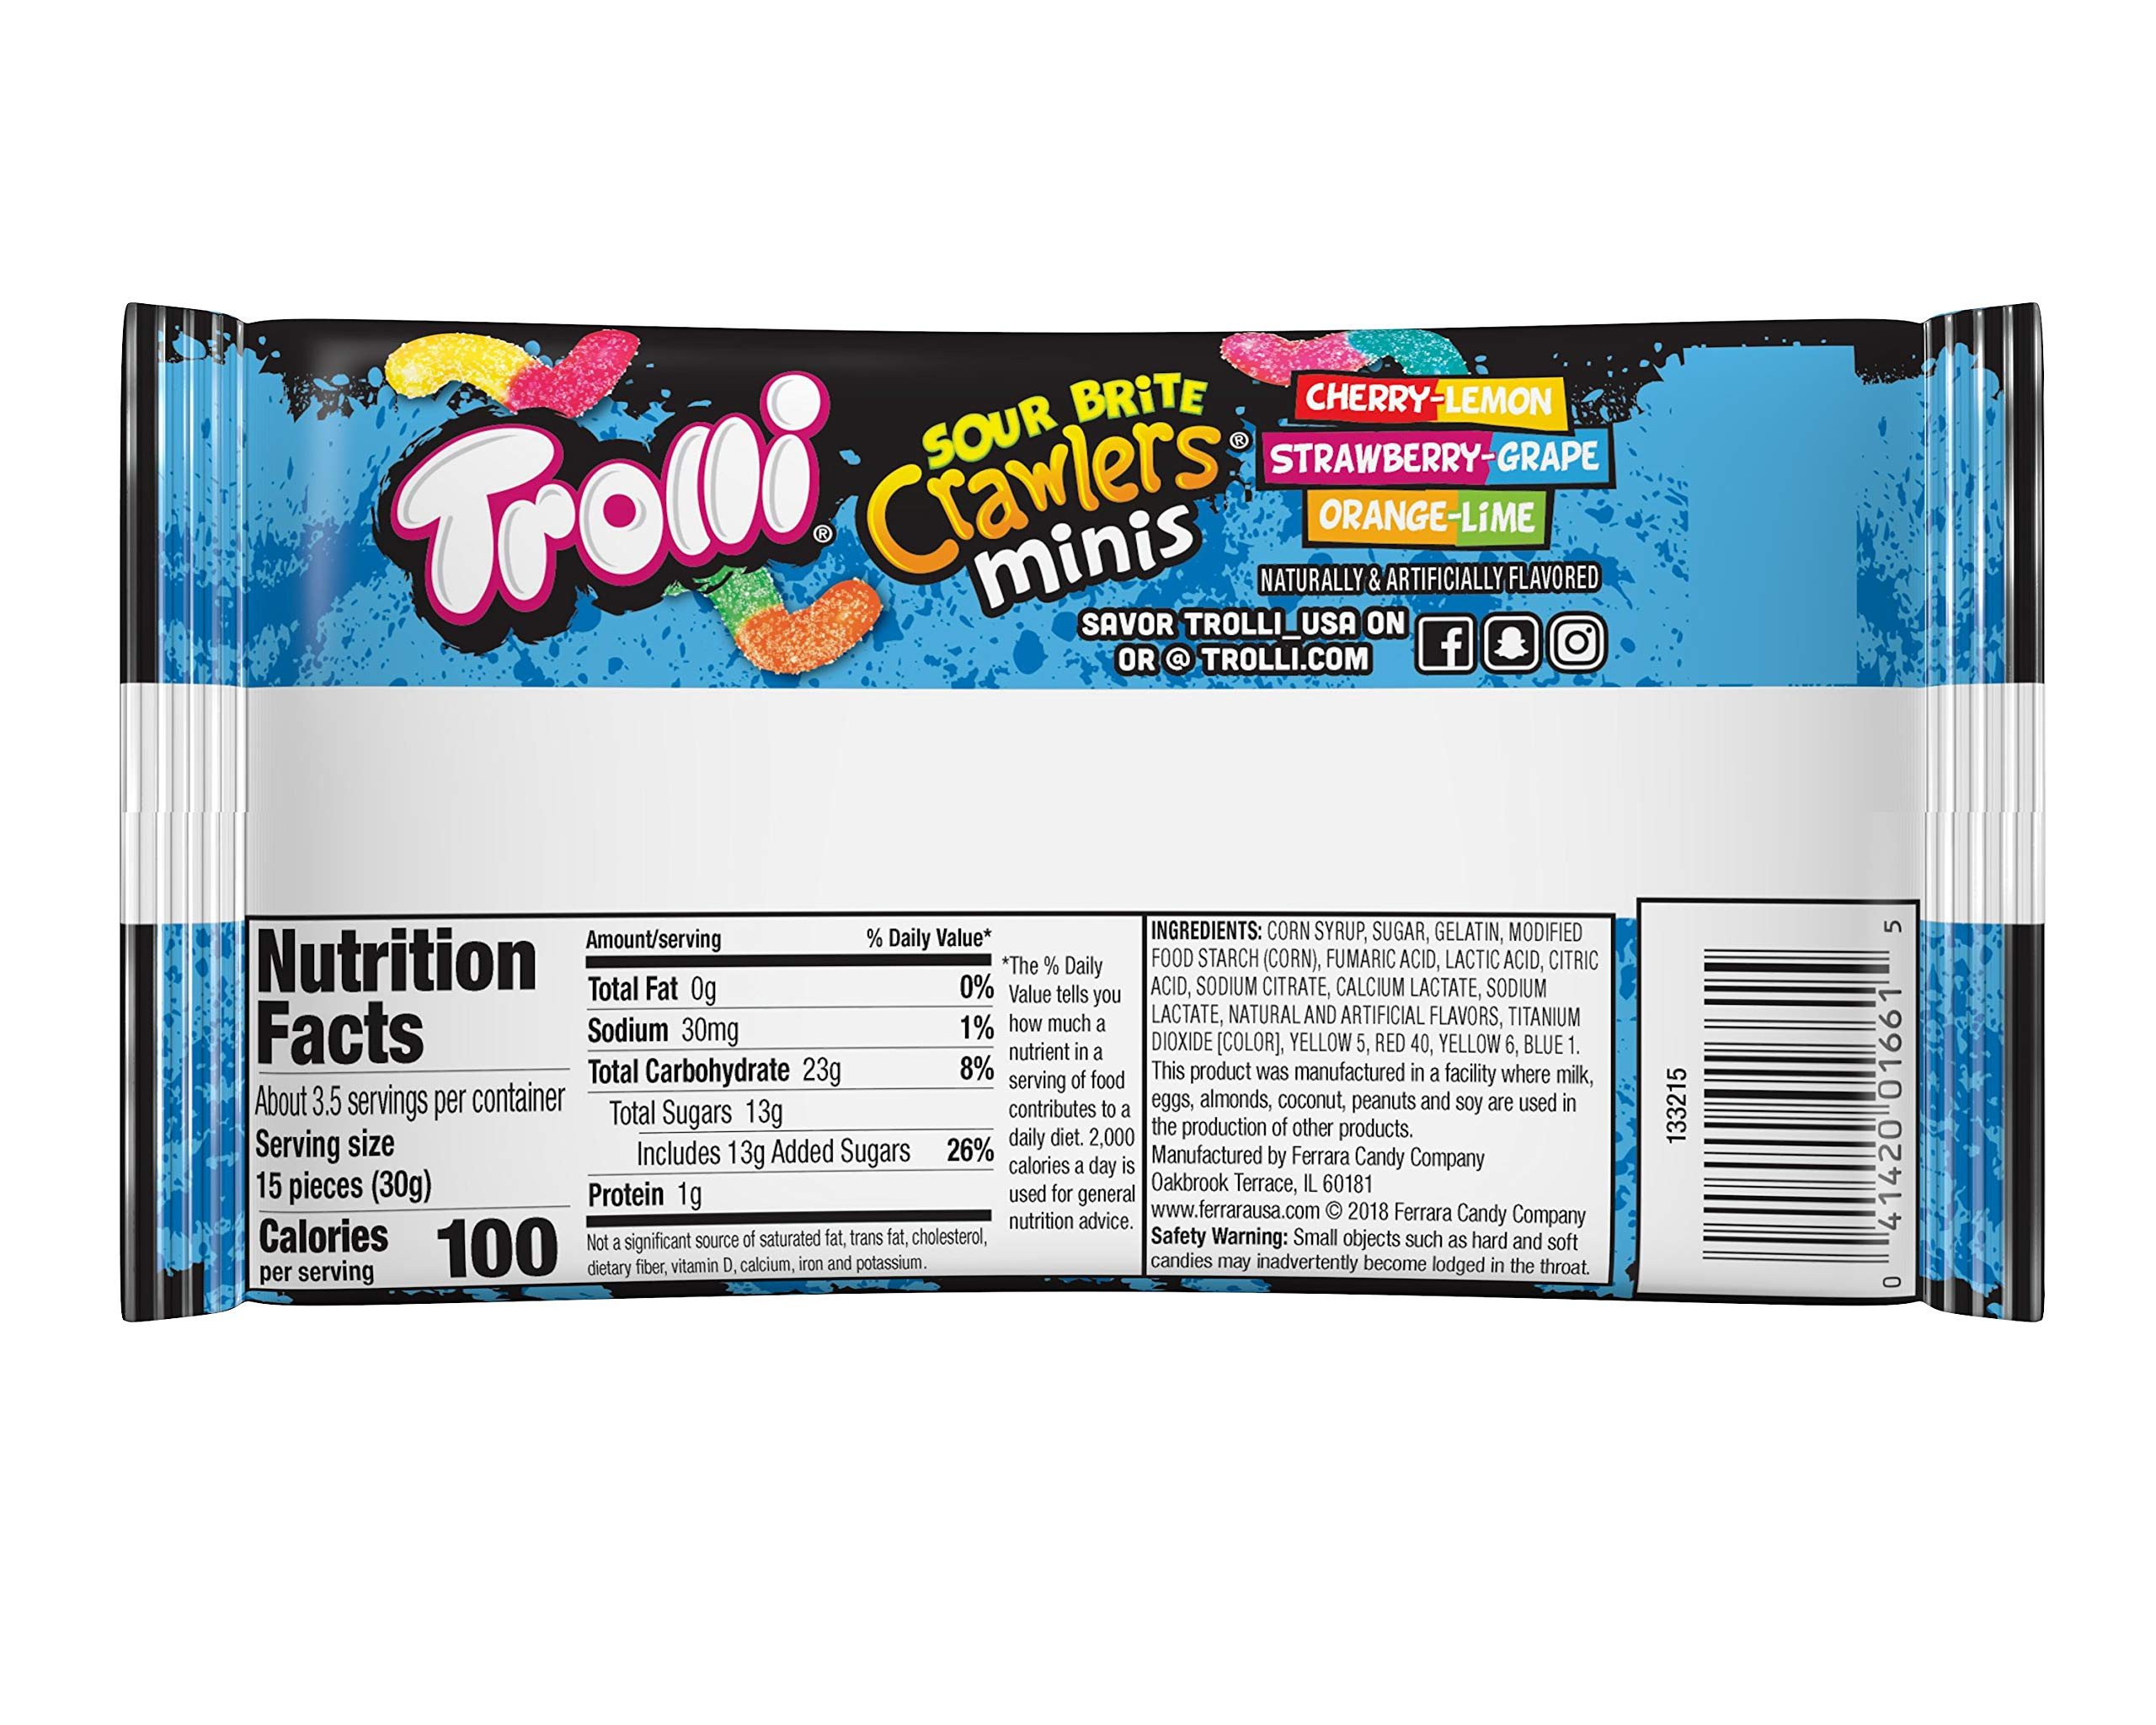 Trolli Mini Sour Brite Crawlers Gummy Worms, 3.5 Ounce Bag (Pack of 18) Sour Gummy Worms by Trolli (Image #3)